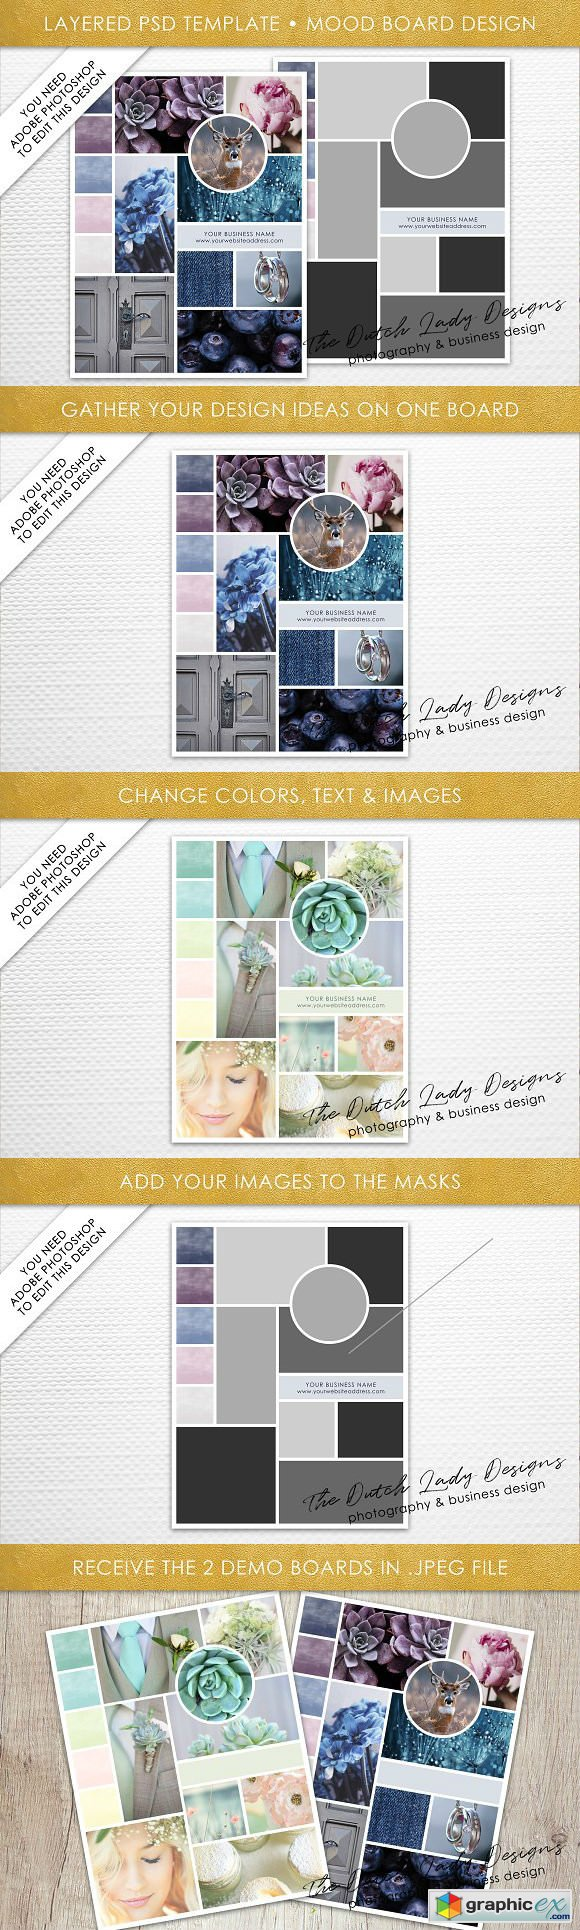 PSD Mood & Vision Board Template 4